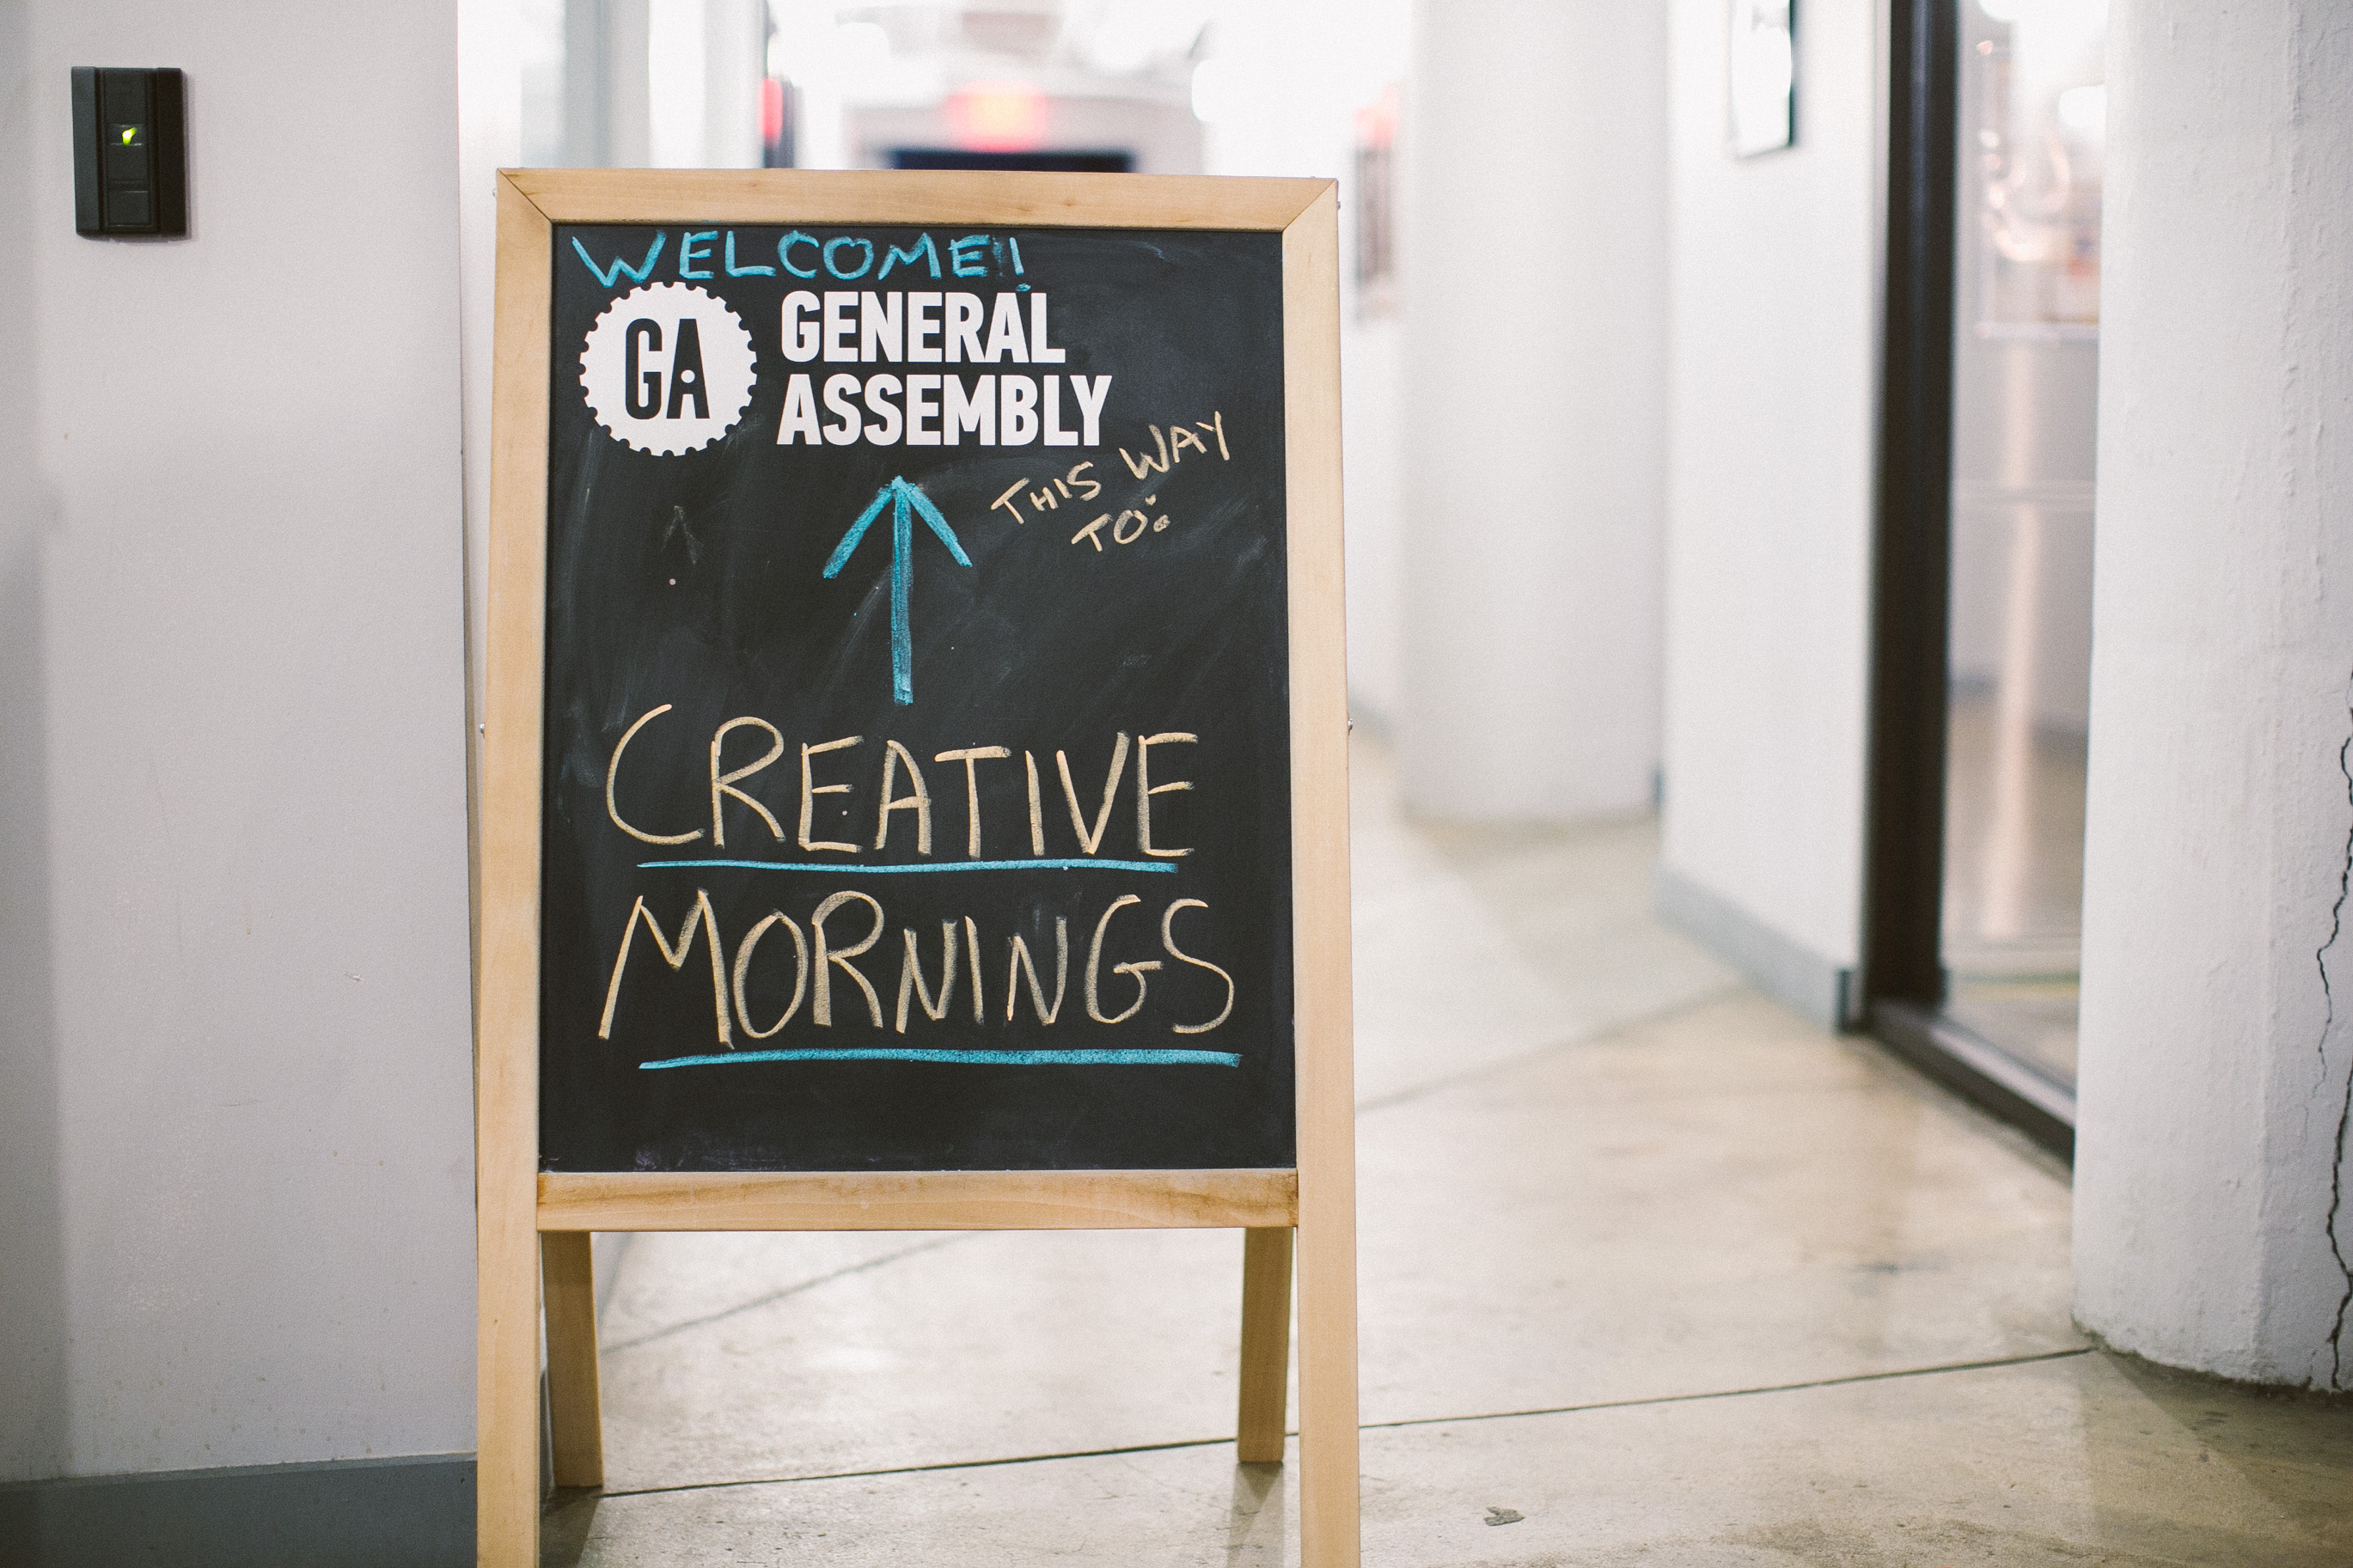 Working remotely Creative Mornings